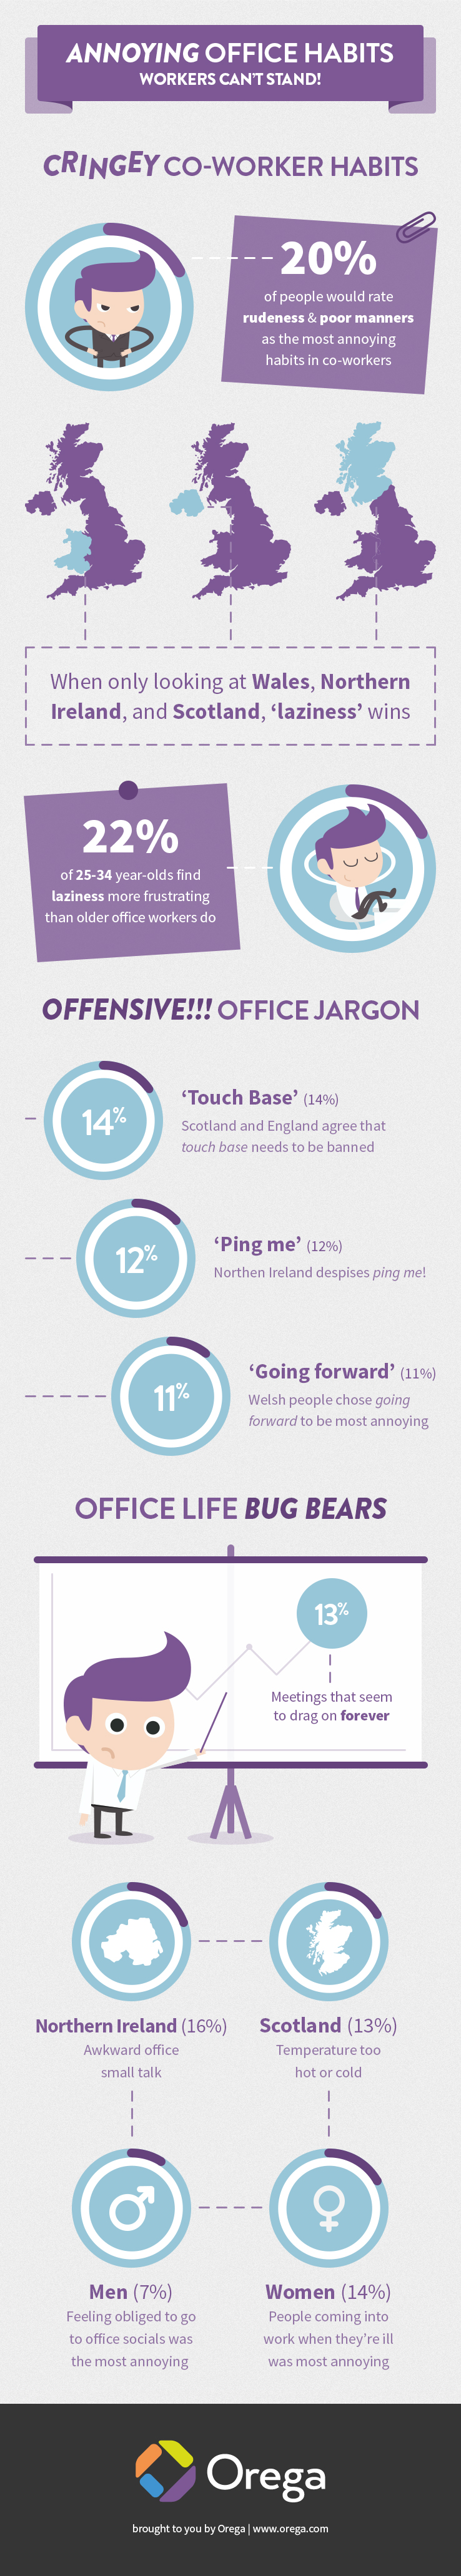 Annoying Office Habits Workers Just Can't Stand